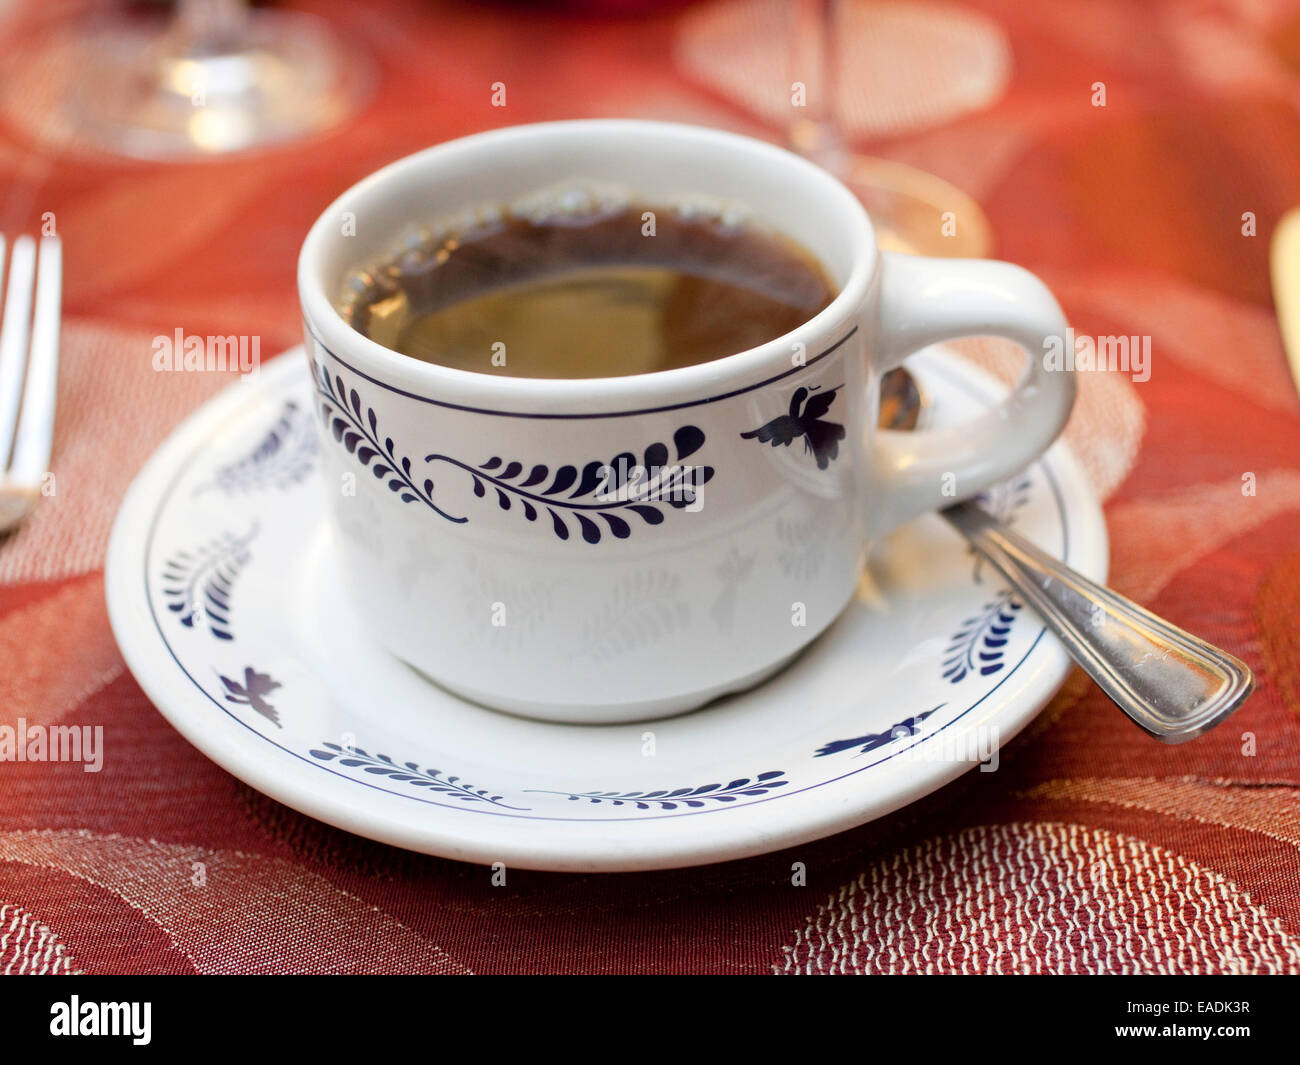 black coffee in ceramic cup and saucer - Stock Image